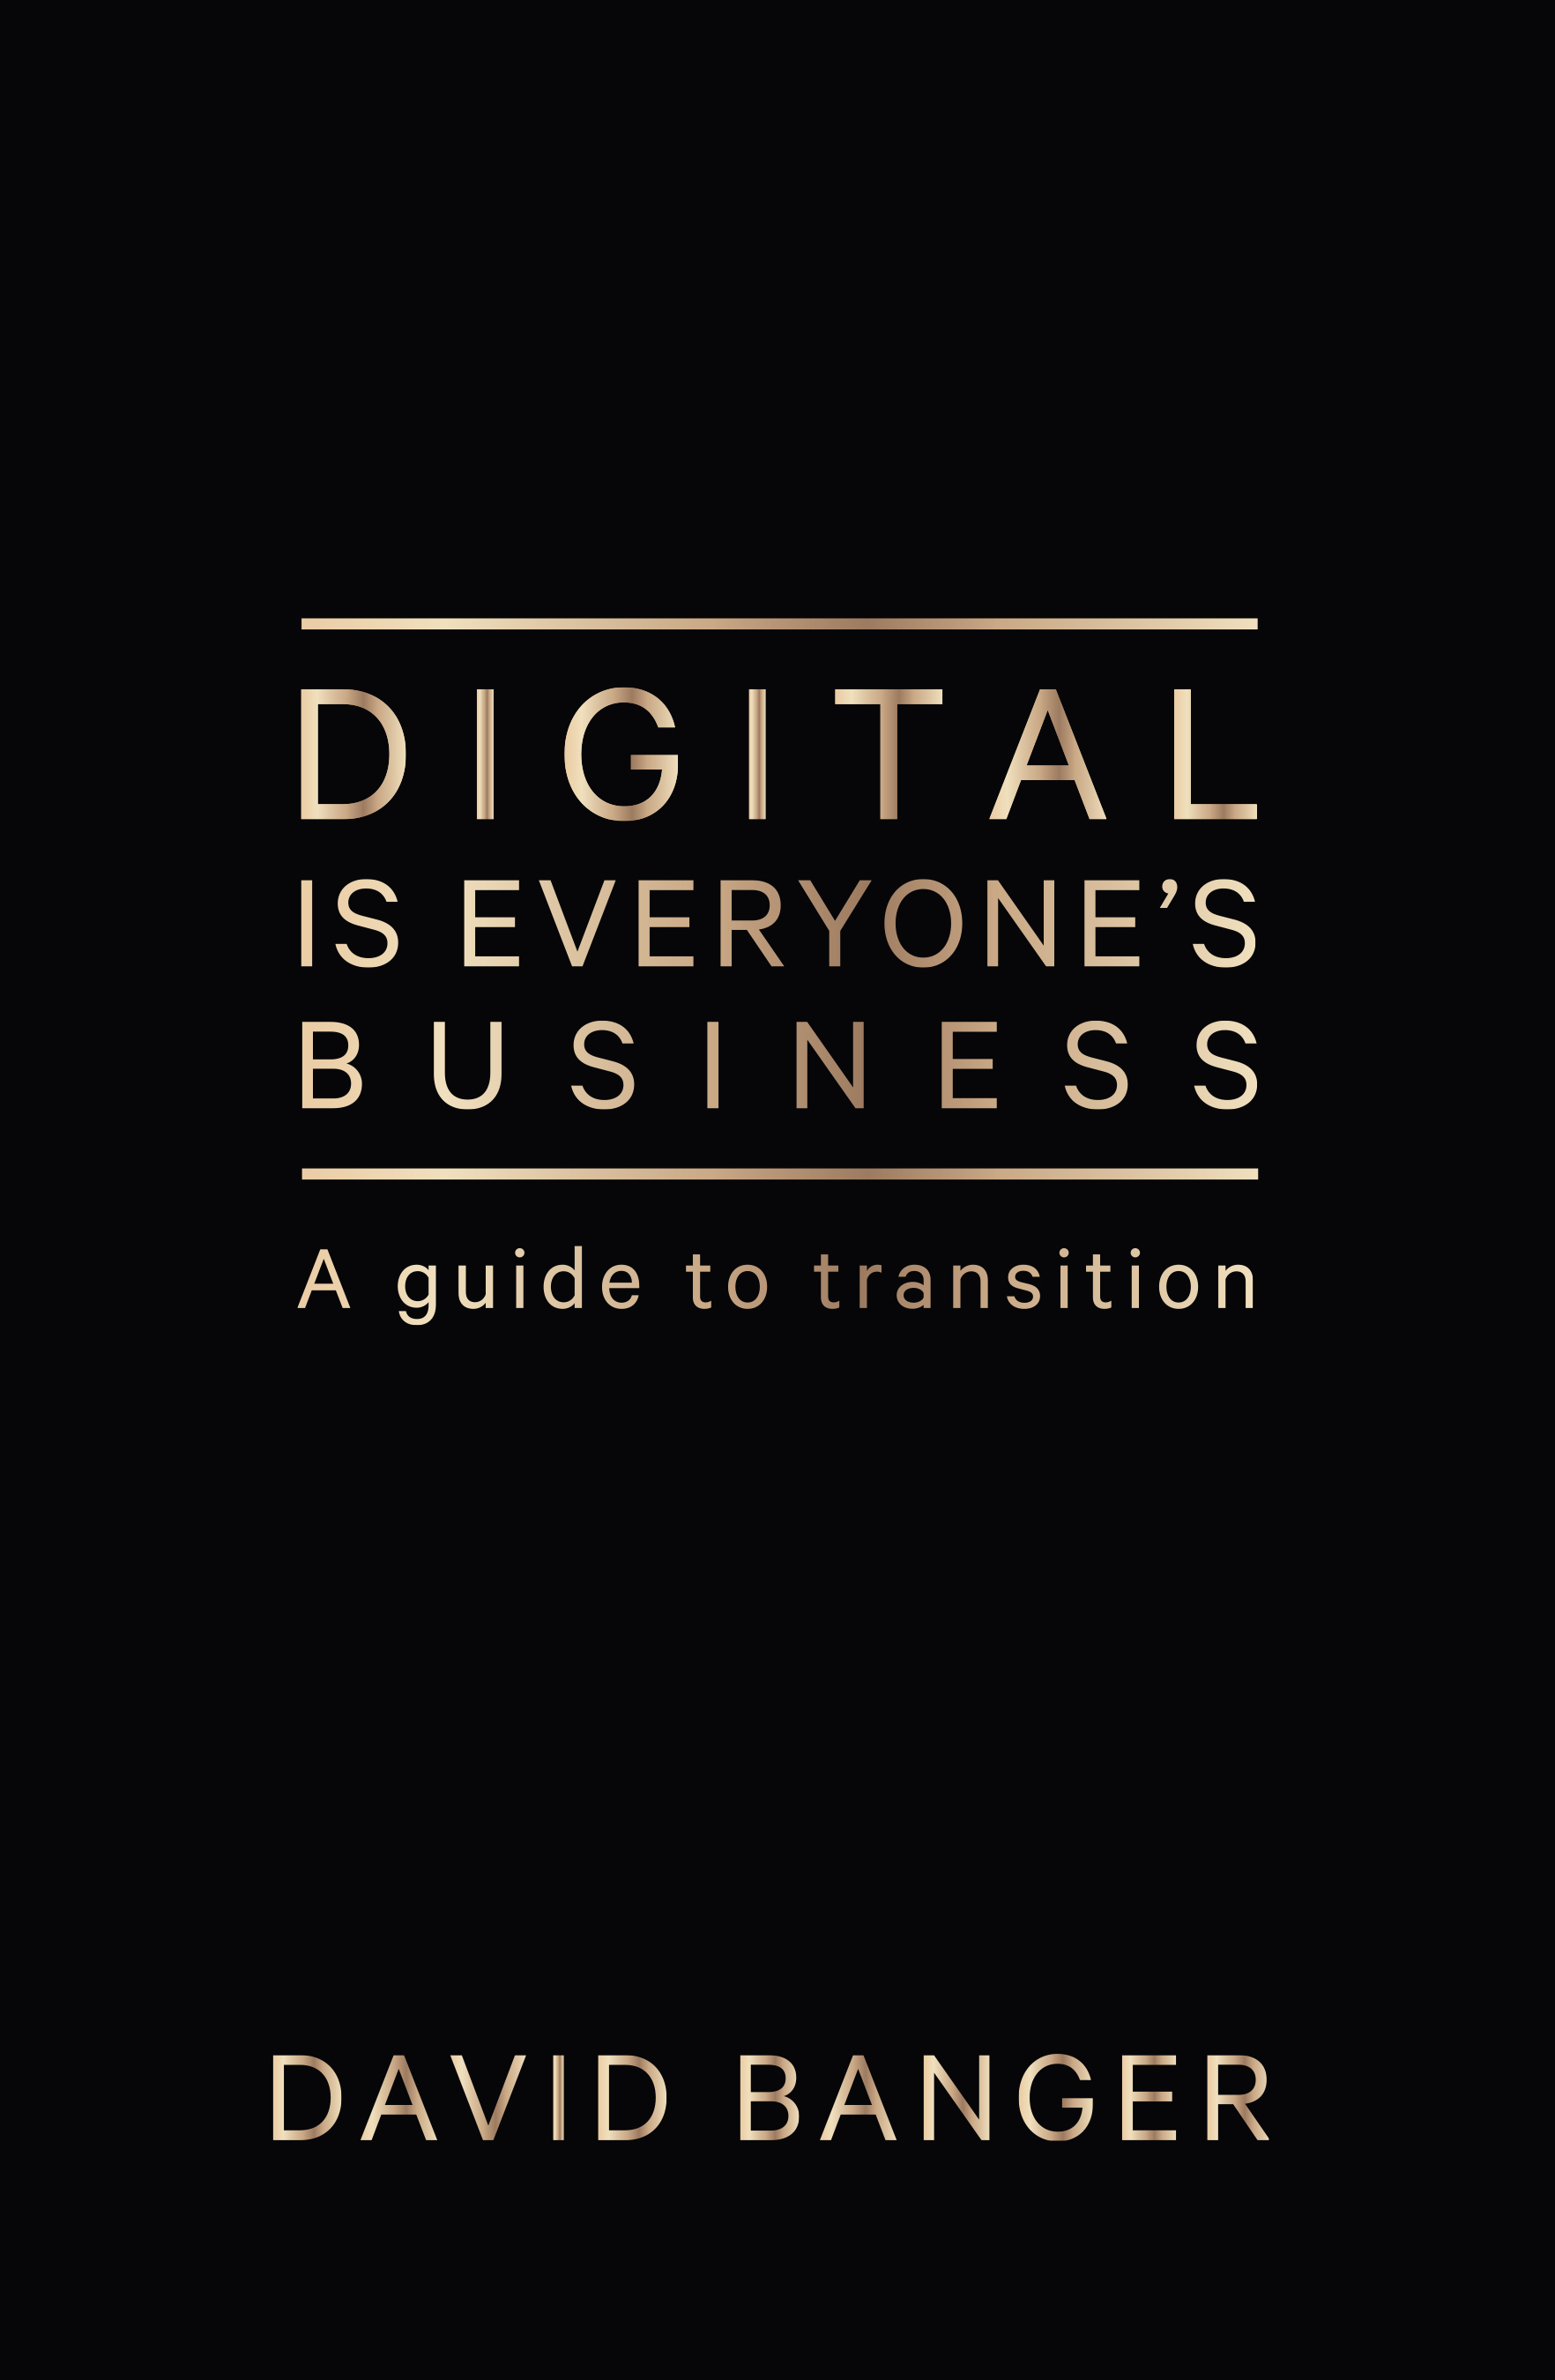 Digital is Everyones Business